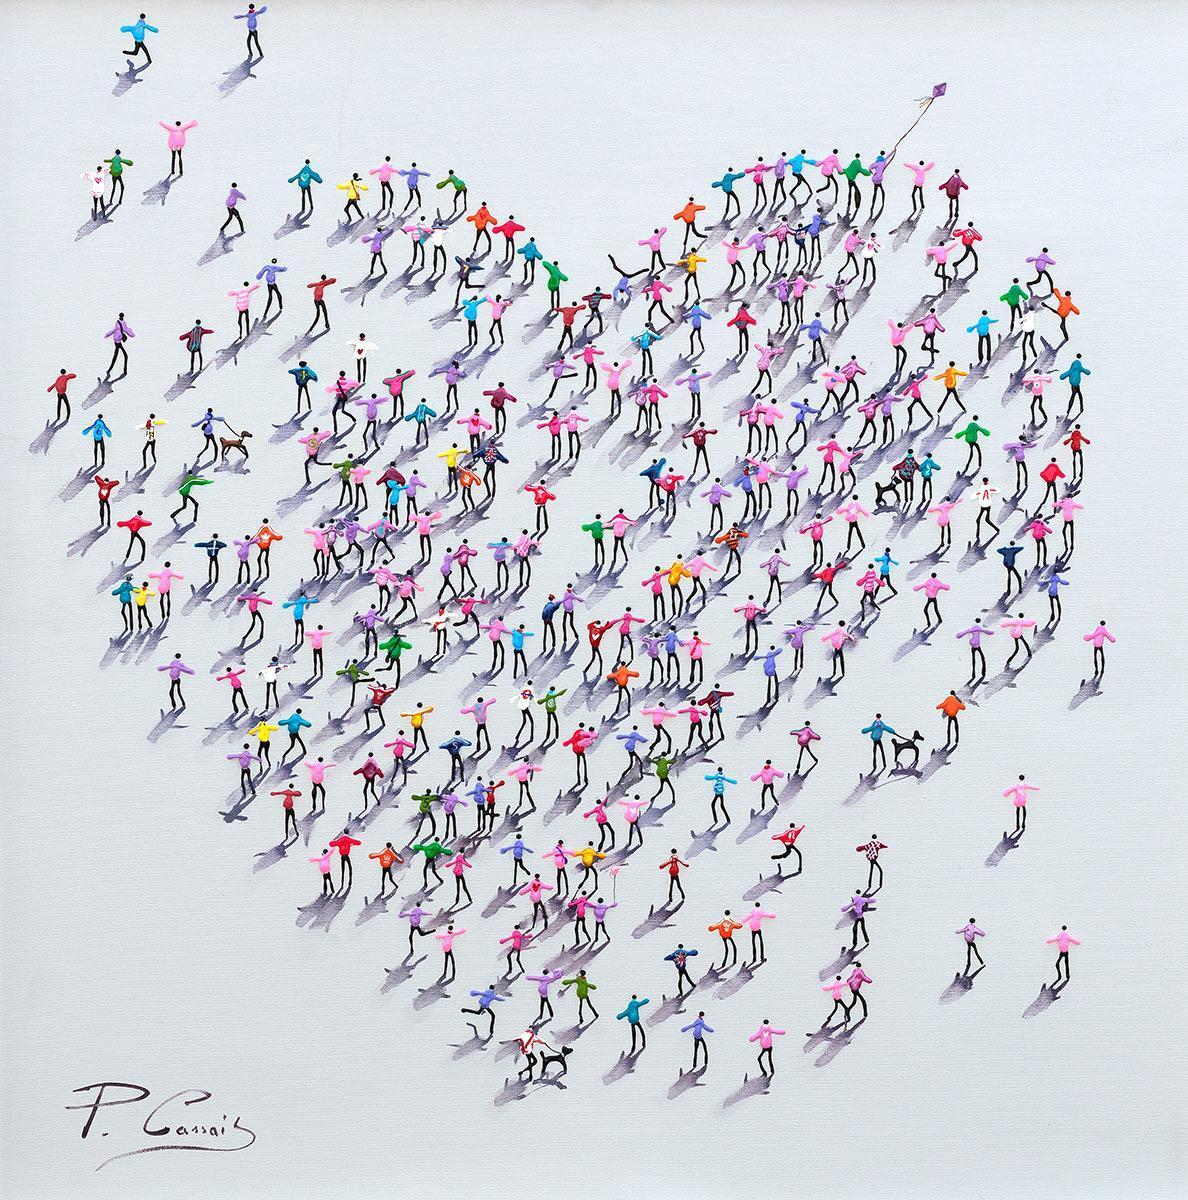 Love Is For Sharing Paola Cassais Framed